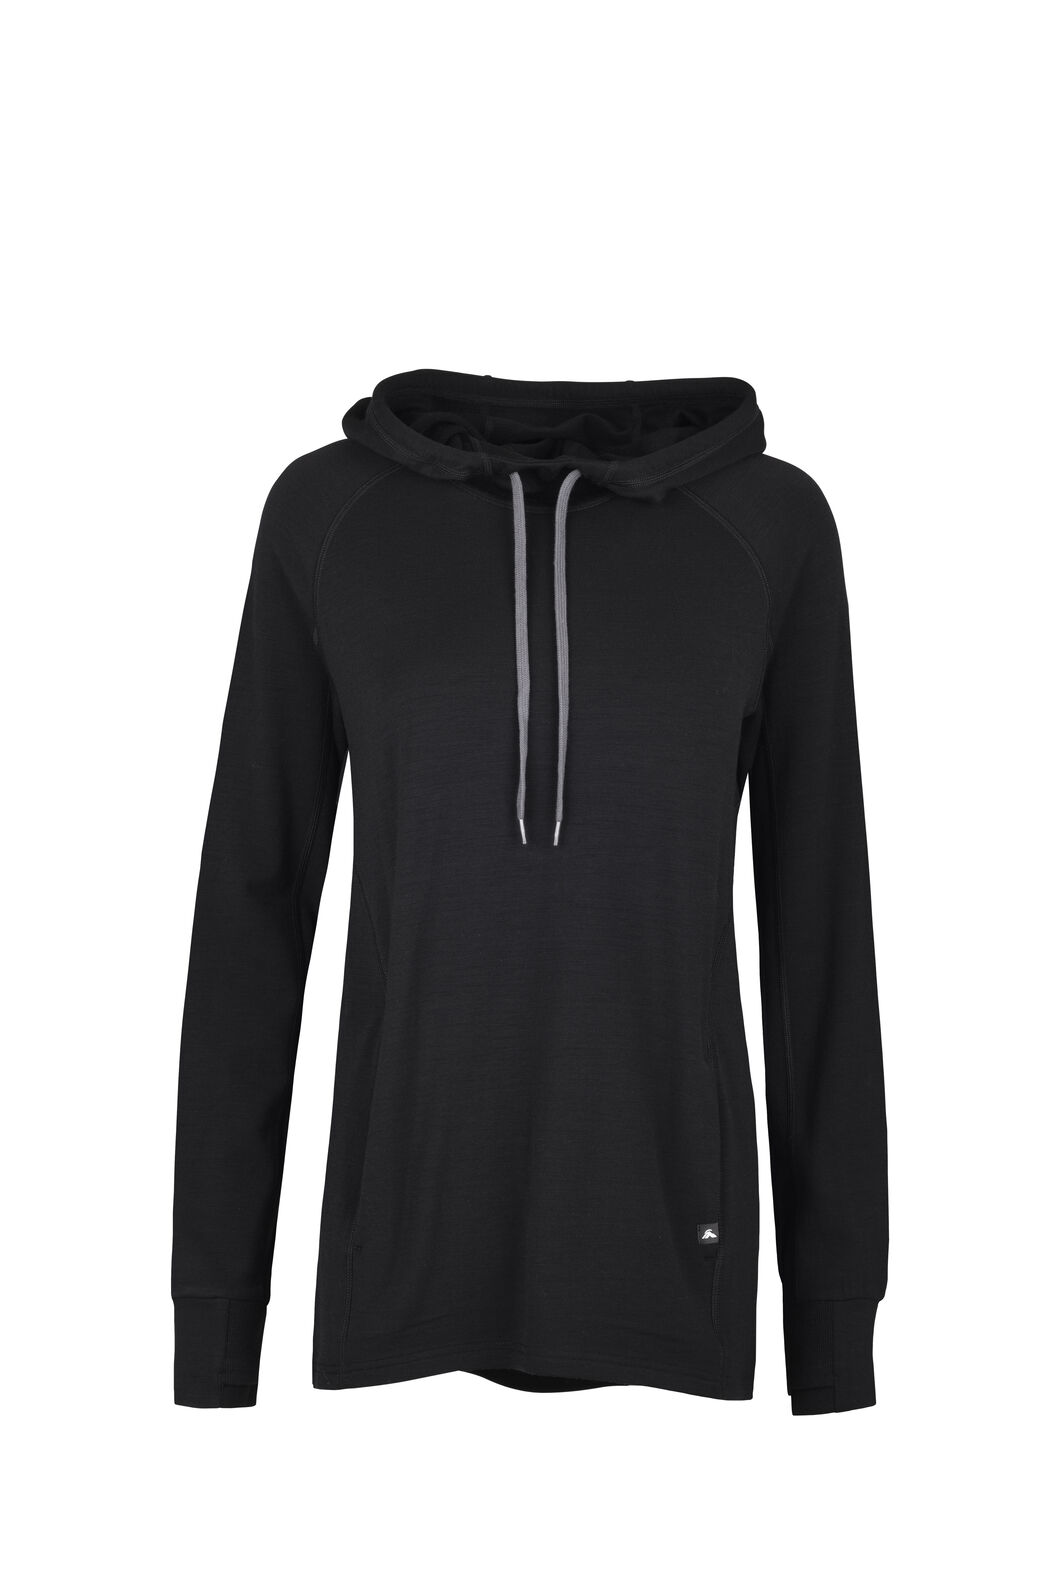 Macpac Lucille Merino Hooded Pullover — Women's, Black, hi-res